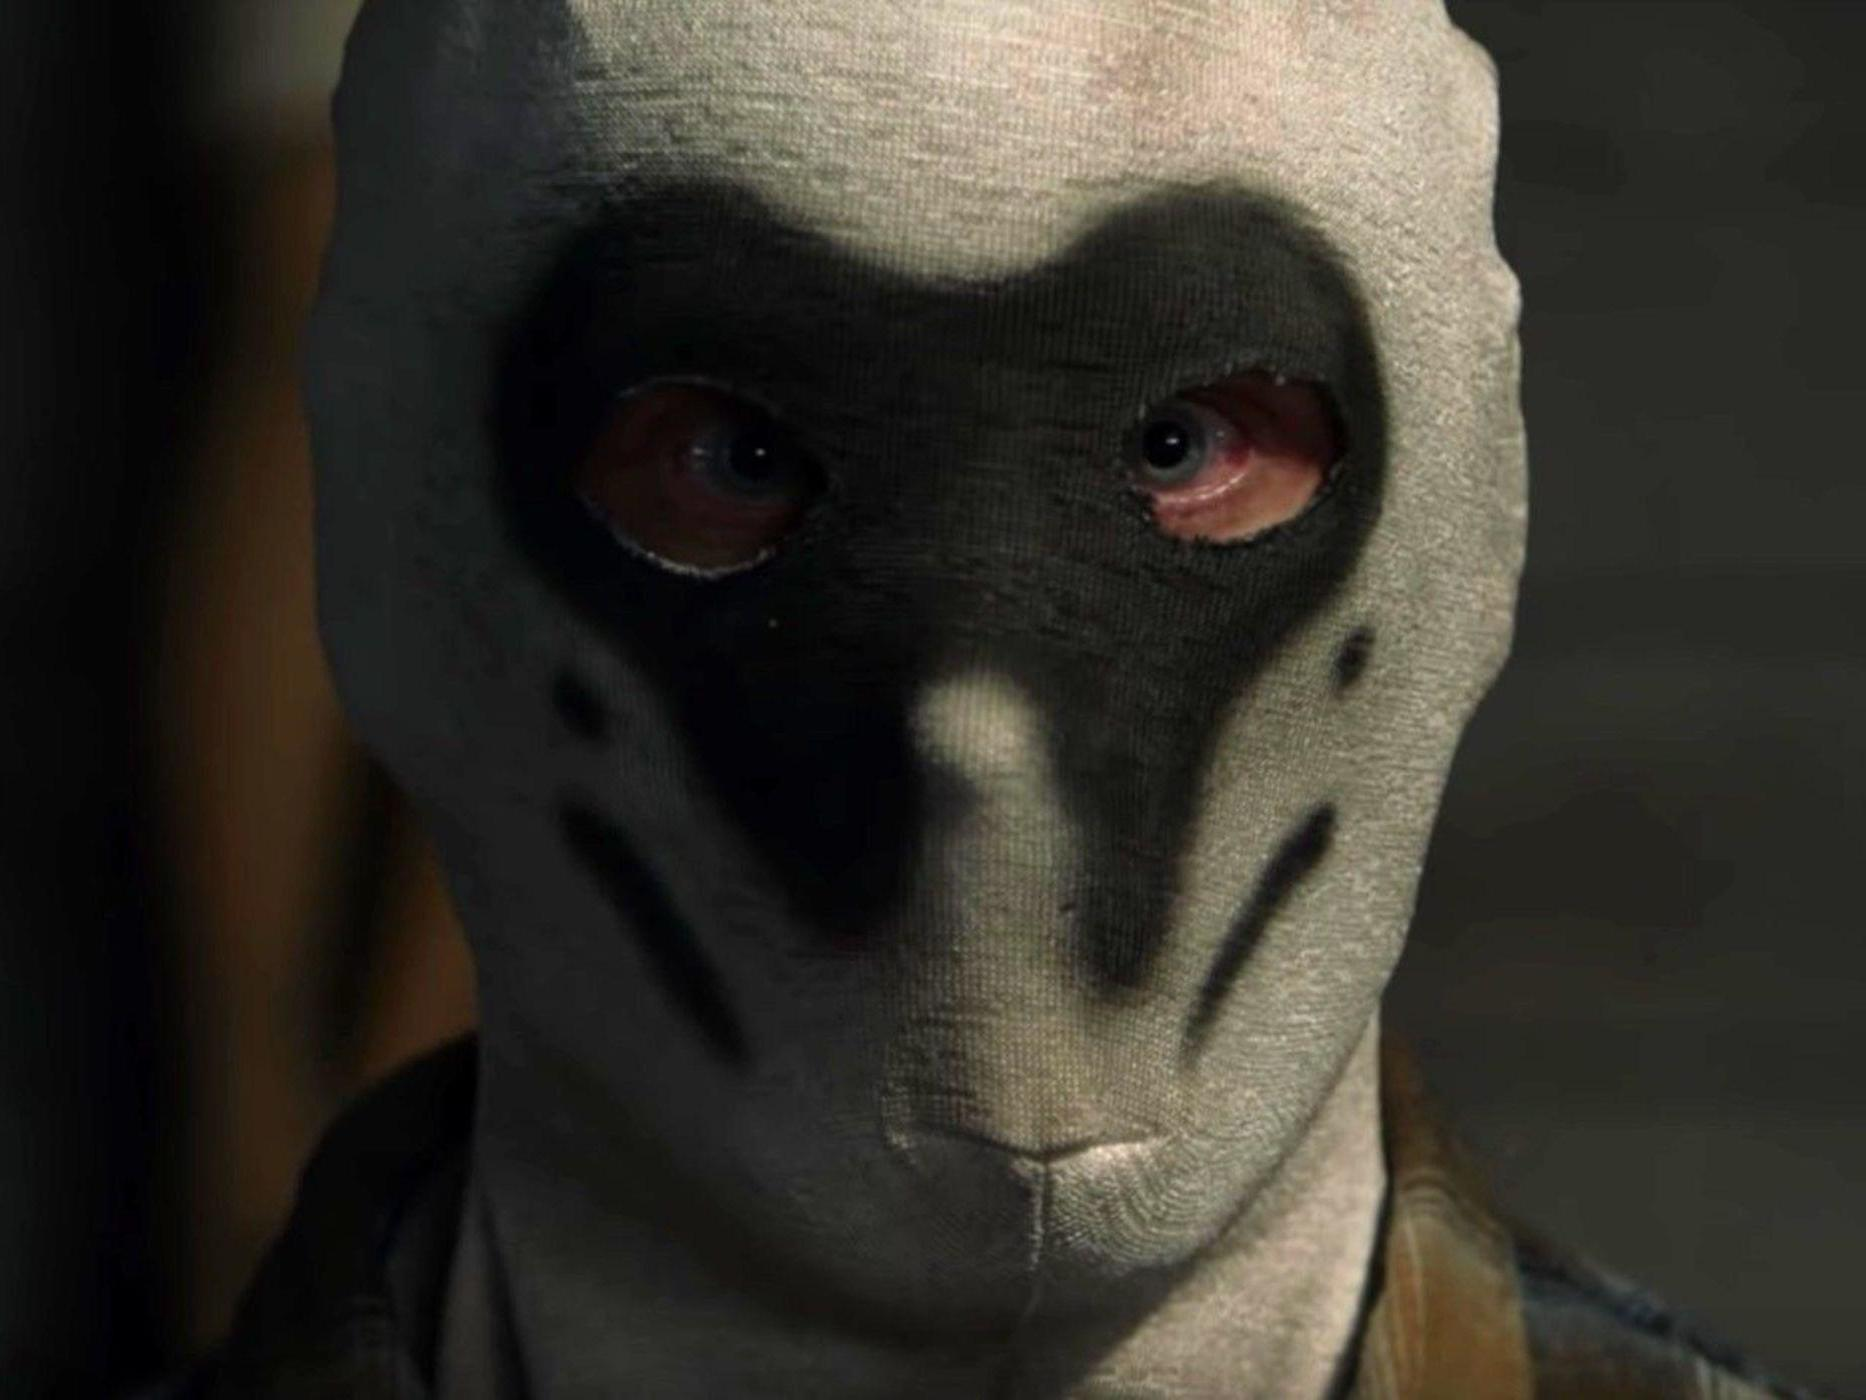 Watchmen trailer: HBO series from Damon Lindelof could be next Game of Thrones-sized hit